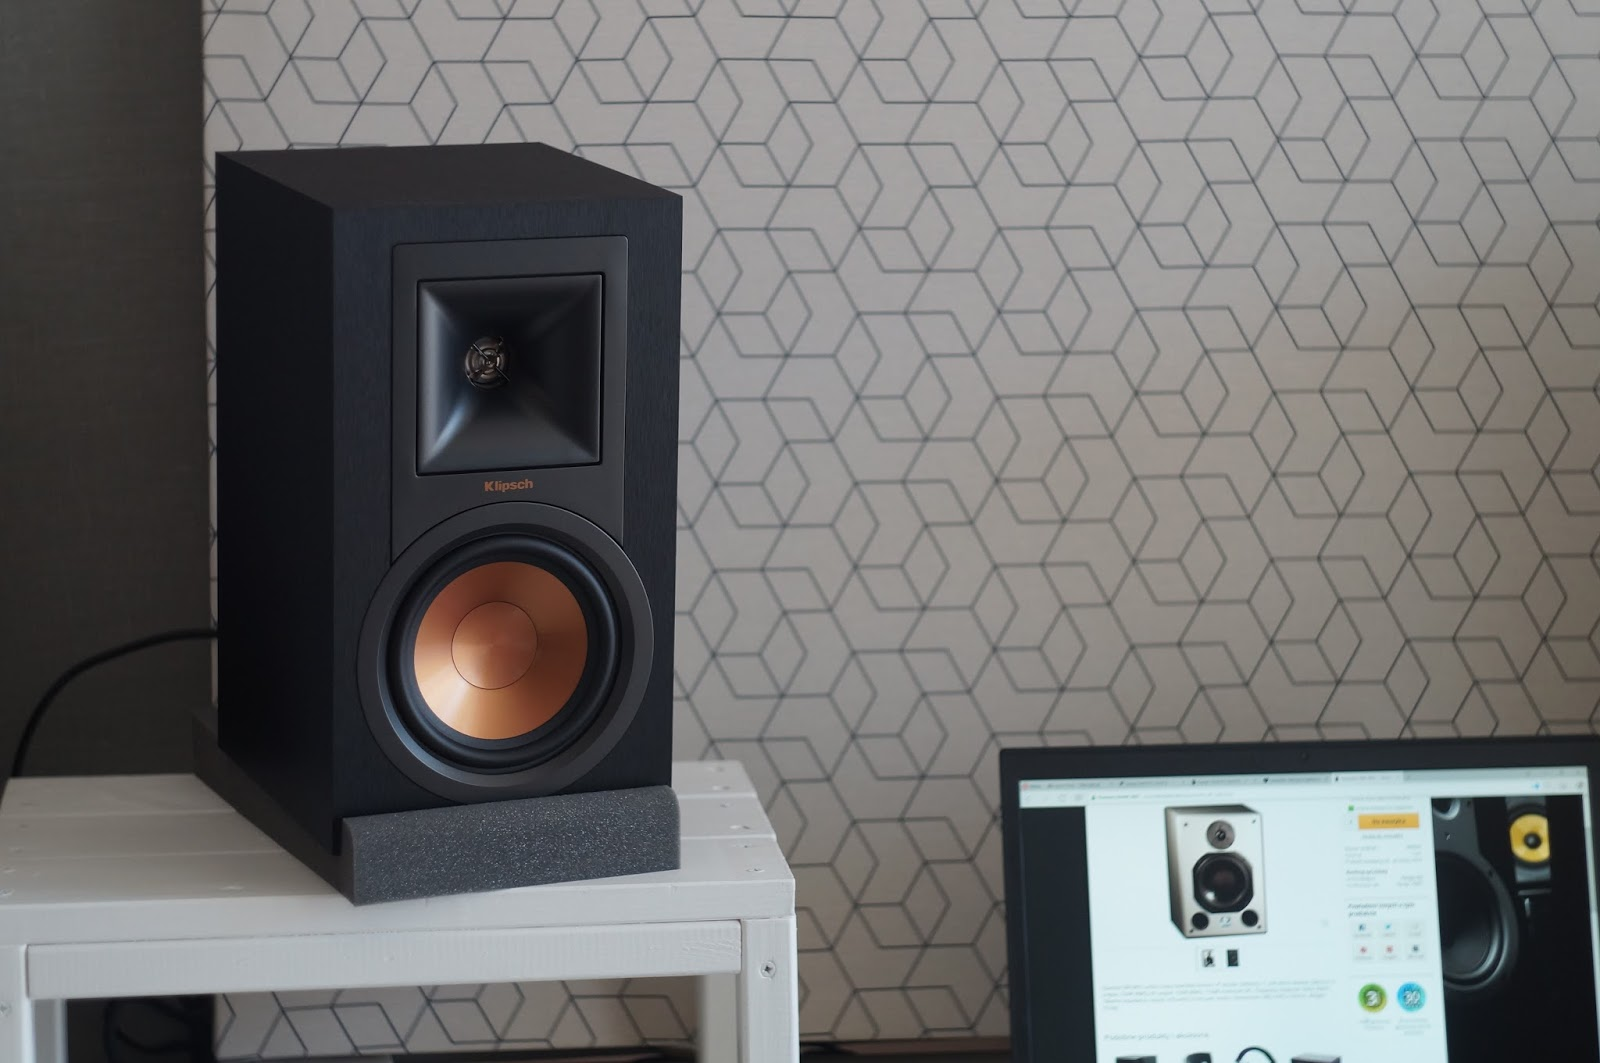 xklipsch com sold pagespeed powered online by bookshelf speakers reference r ic avgearshop klipsch with